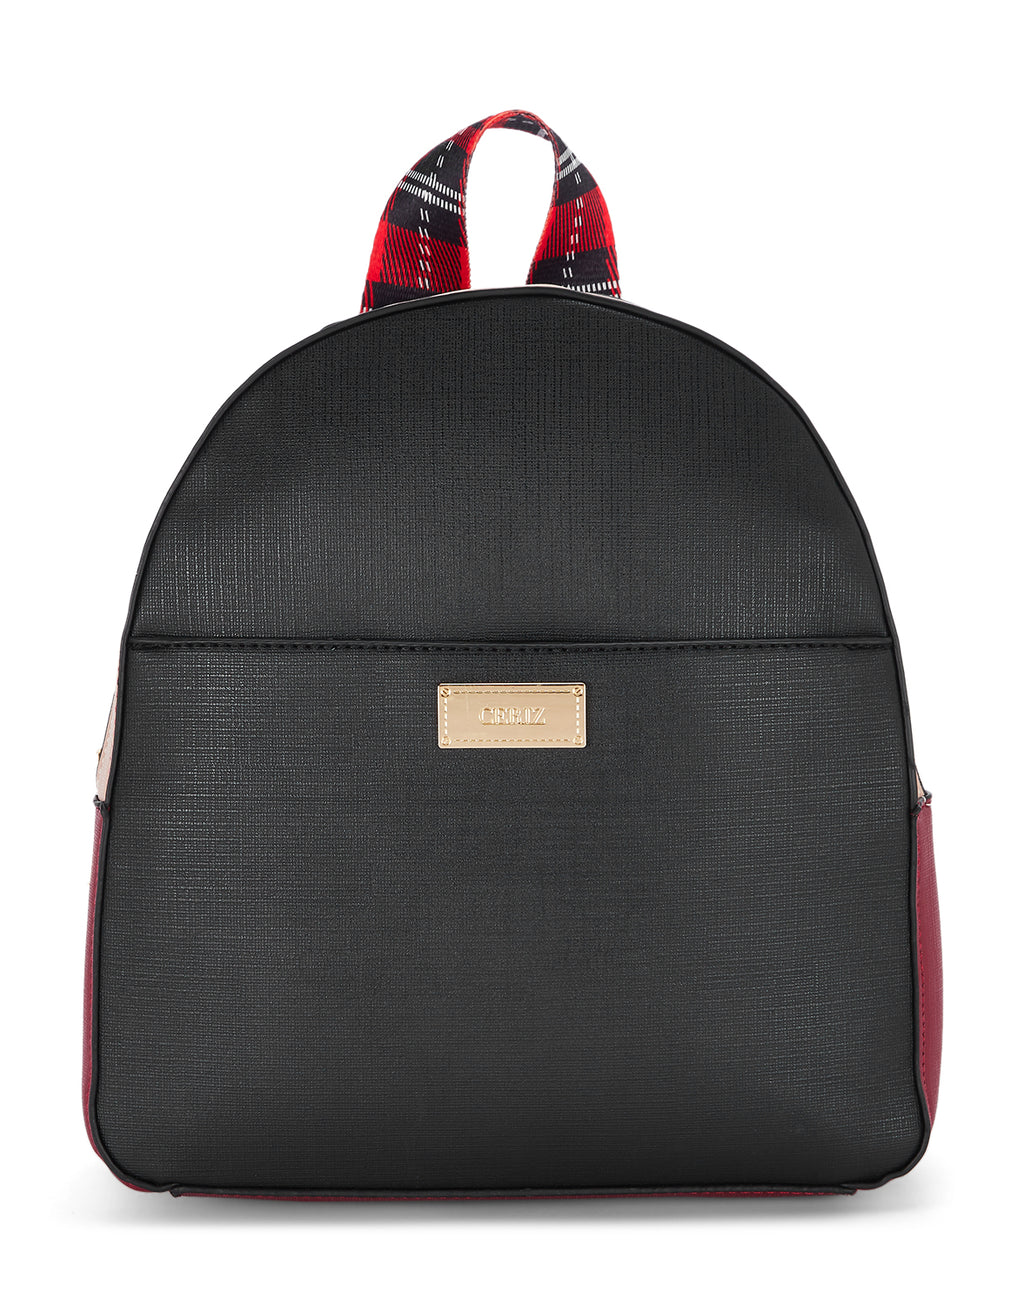 Geneva Verve Black Backpack